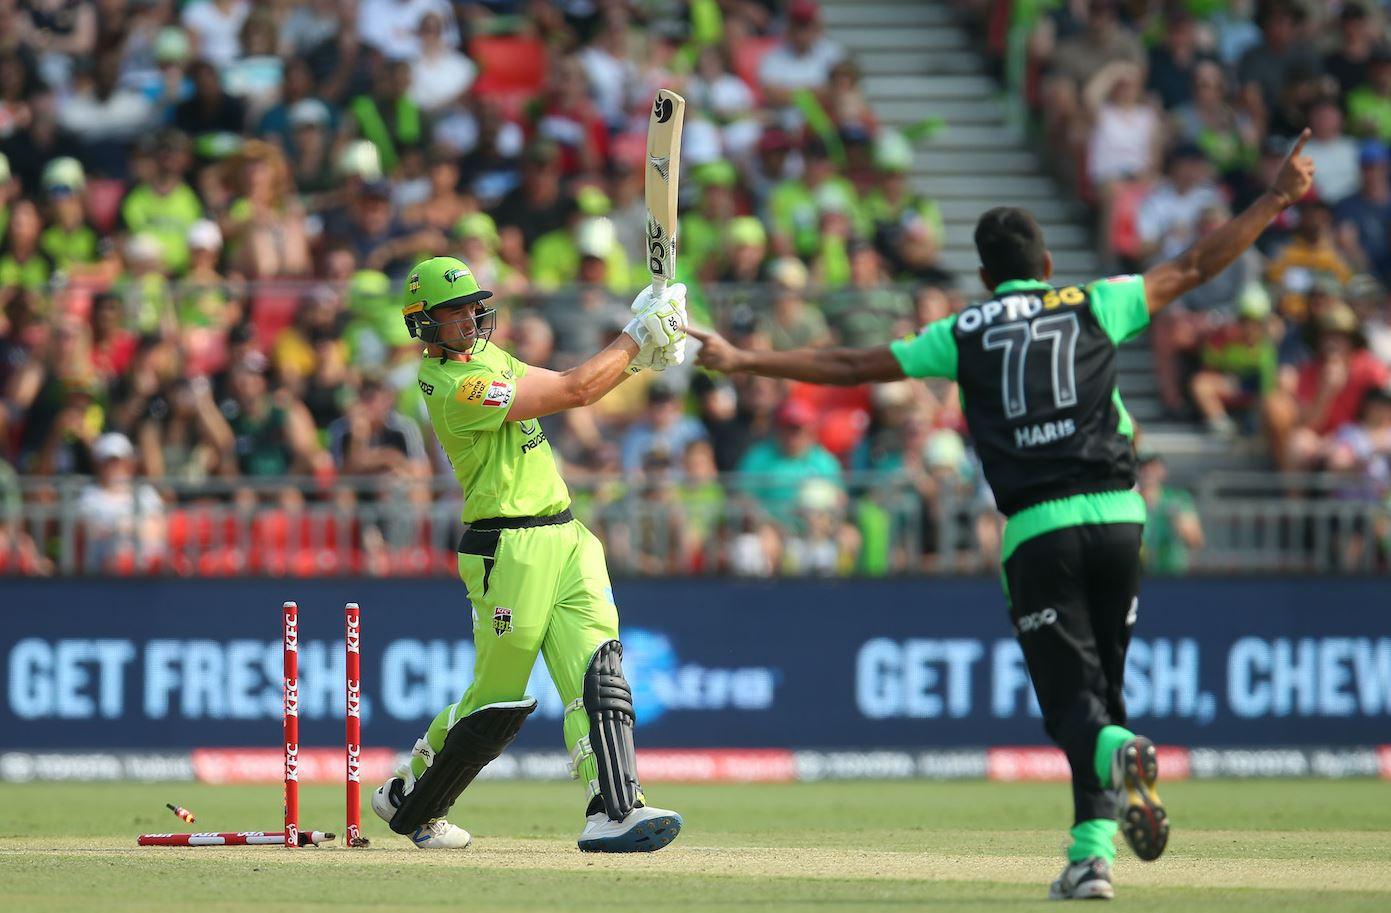 BBL09 Fantasy Tips: The Challenger